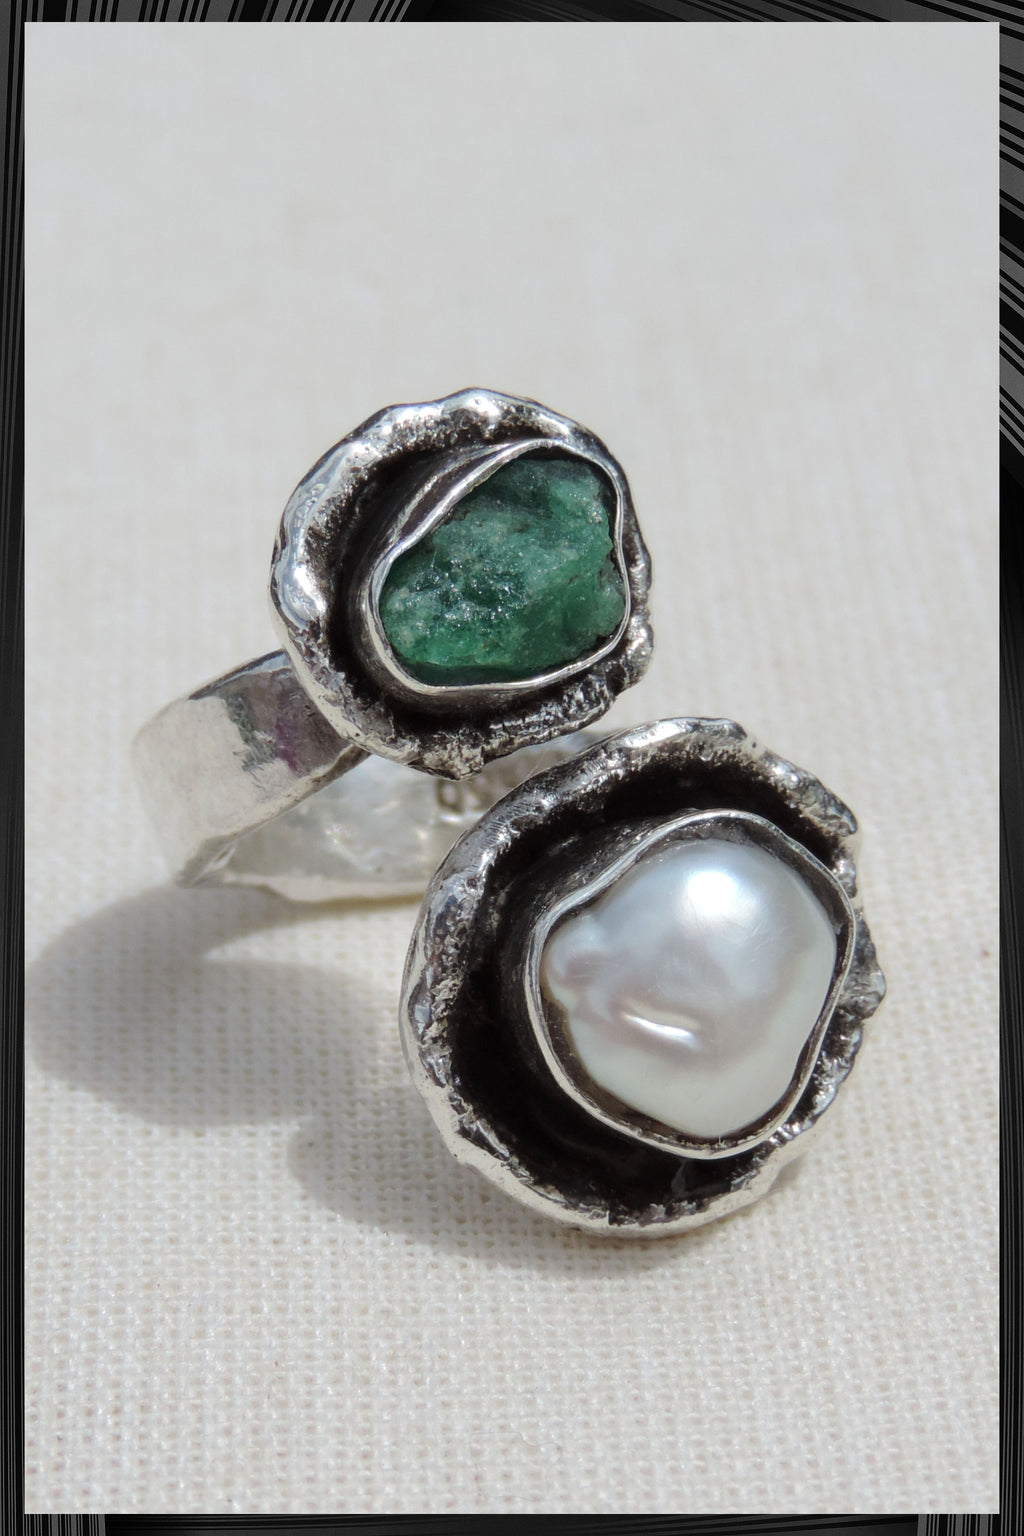 The Emerald and Pearl Ring